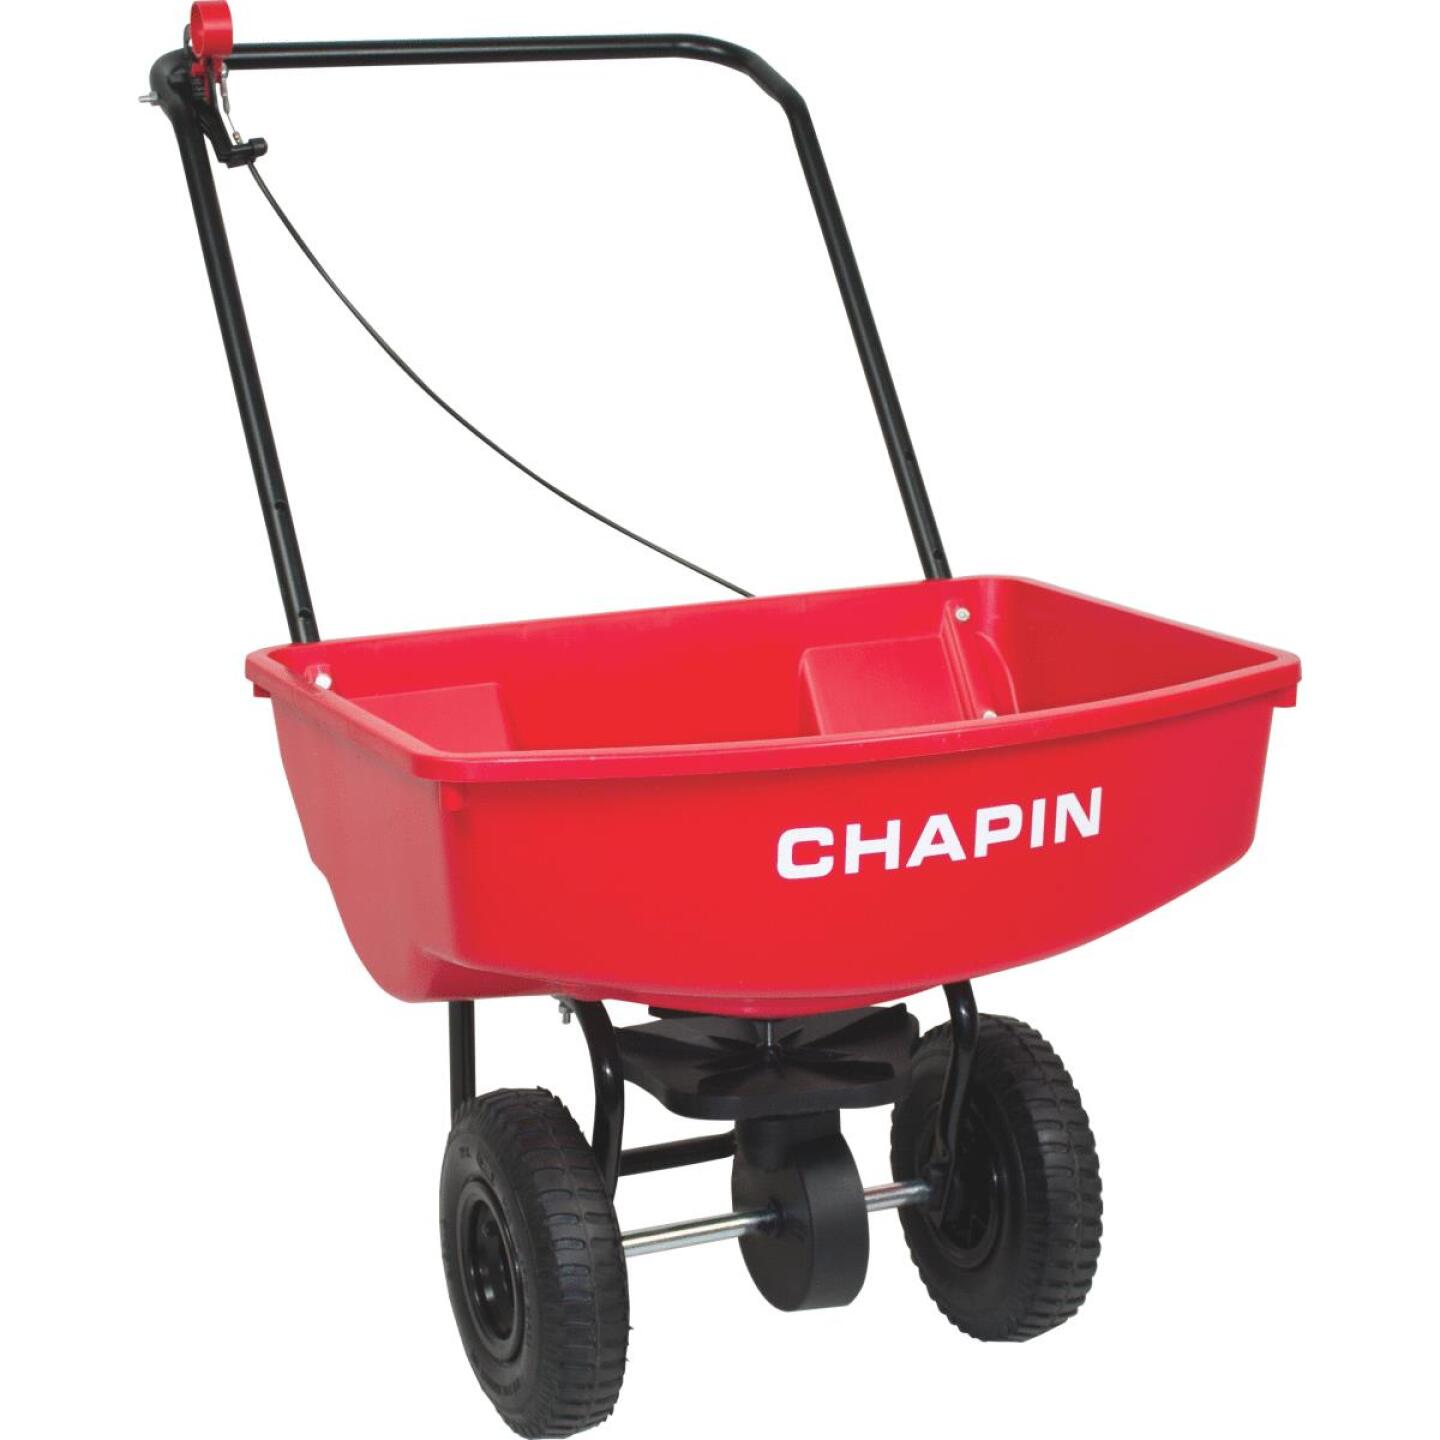 Chapin Deluxe 70 Lb. Capacity Residential Broadcast Push Spreader Image 1